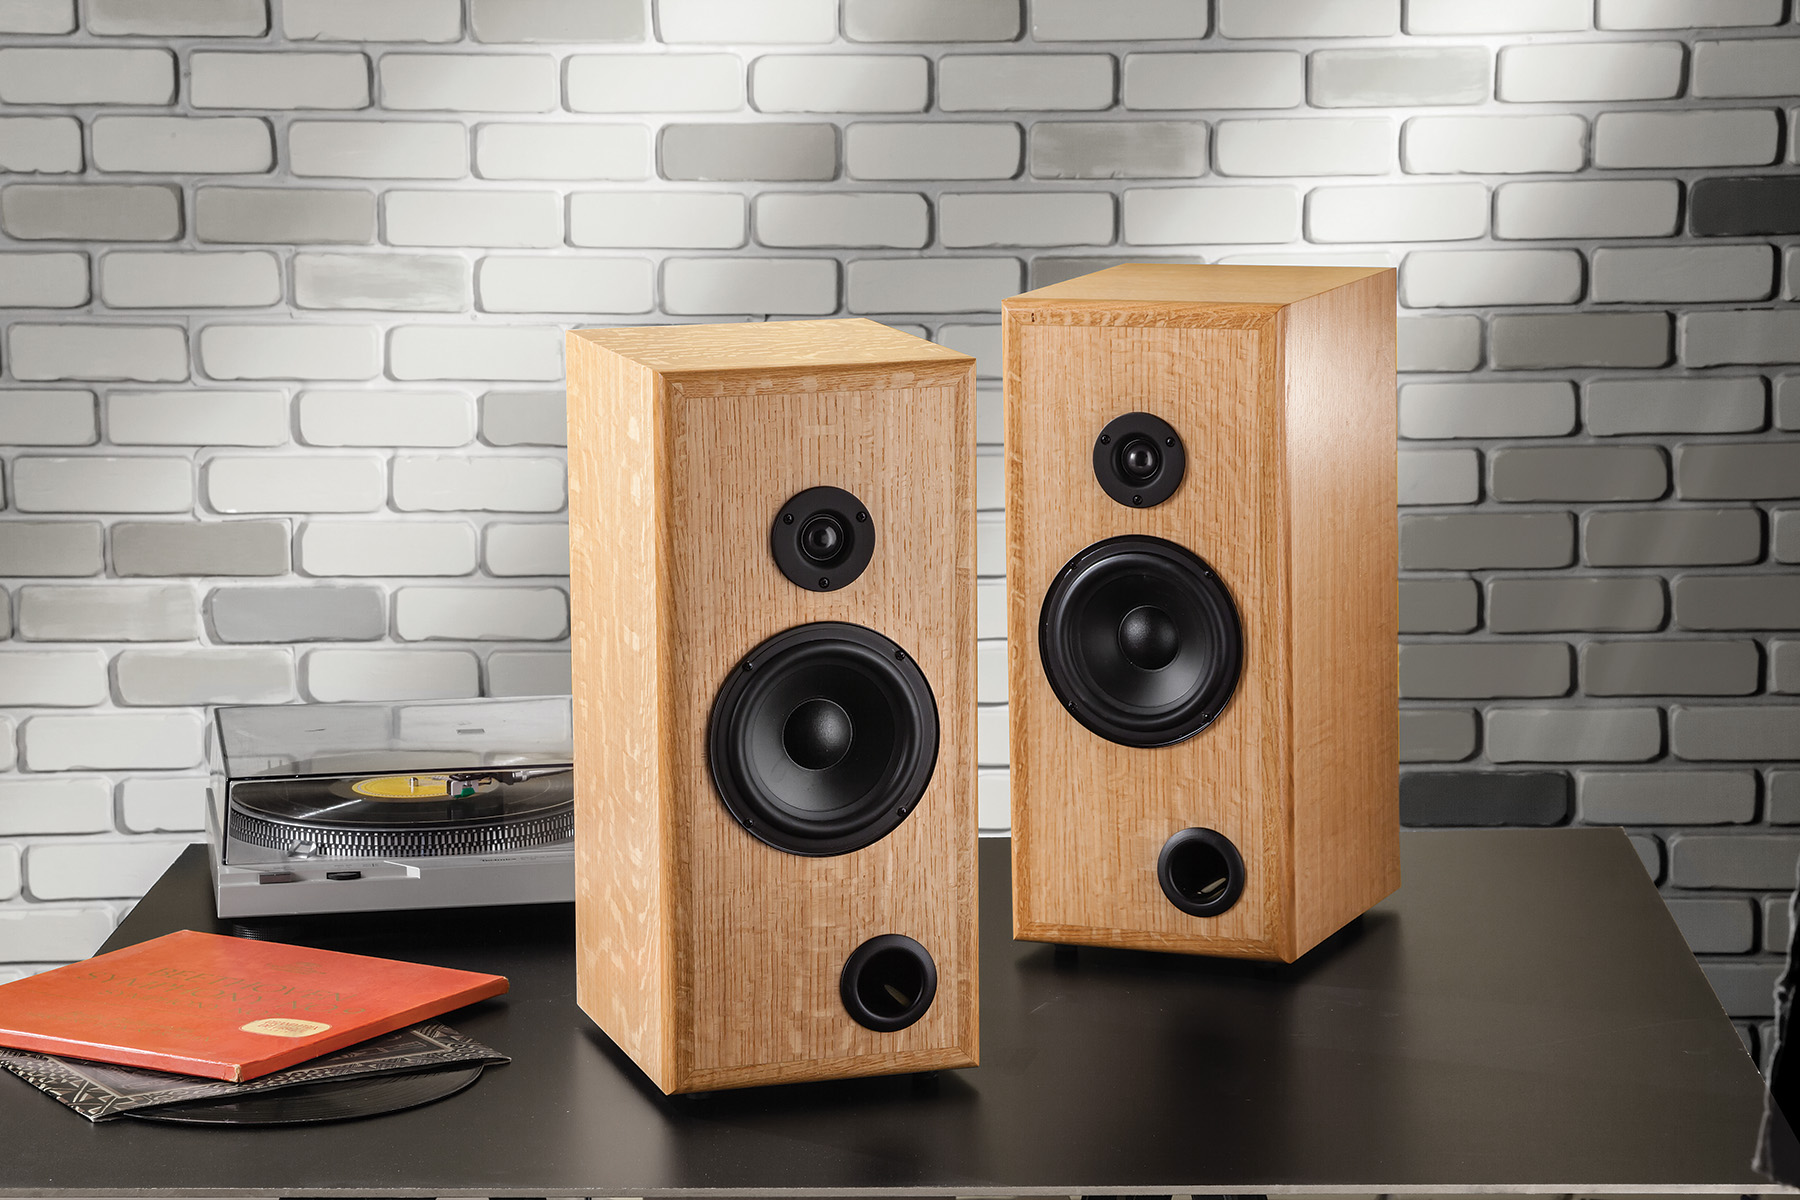 The 5 Diy Speaker Kit Everything You Need Except For Box Material